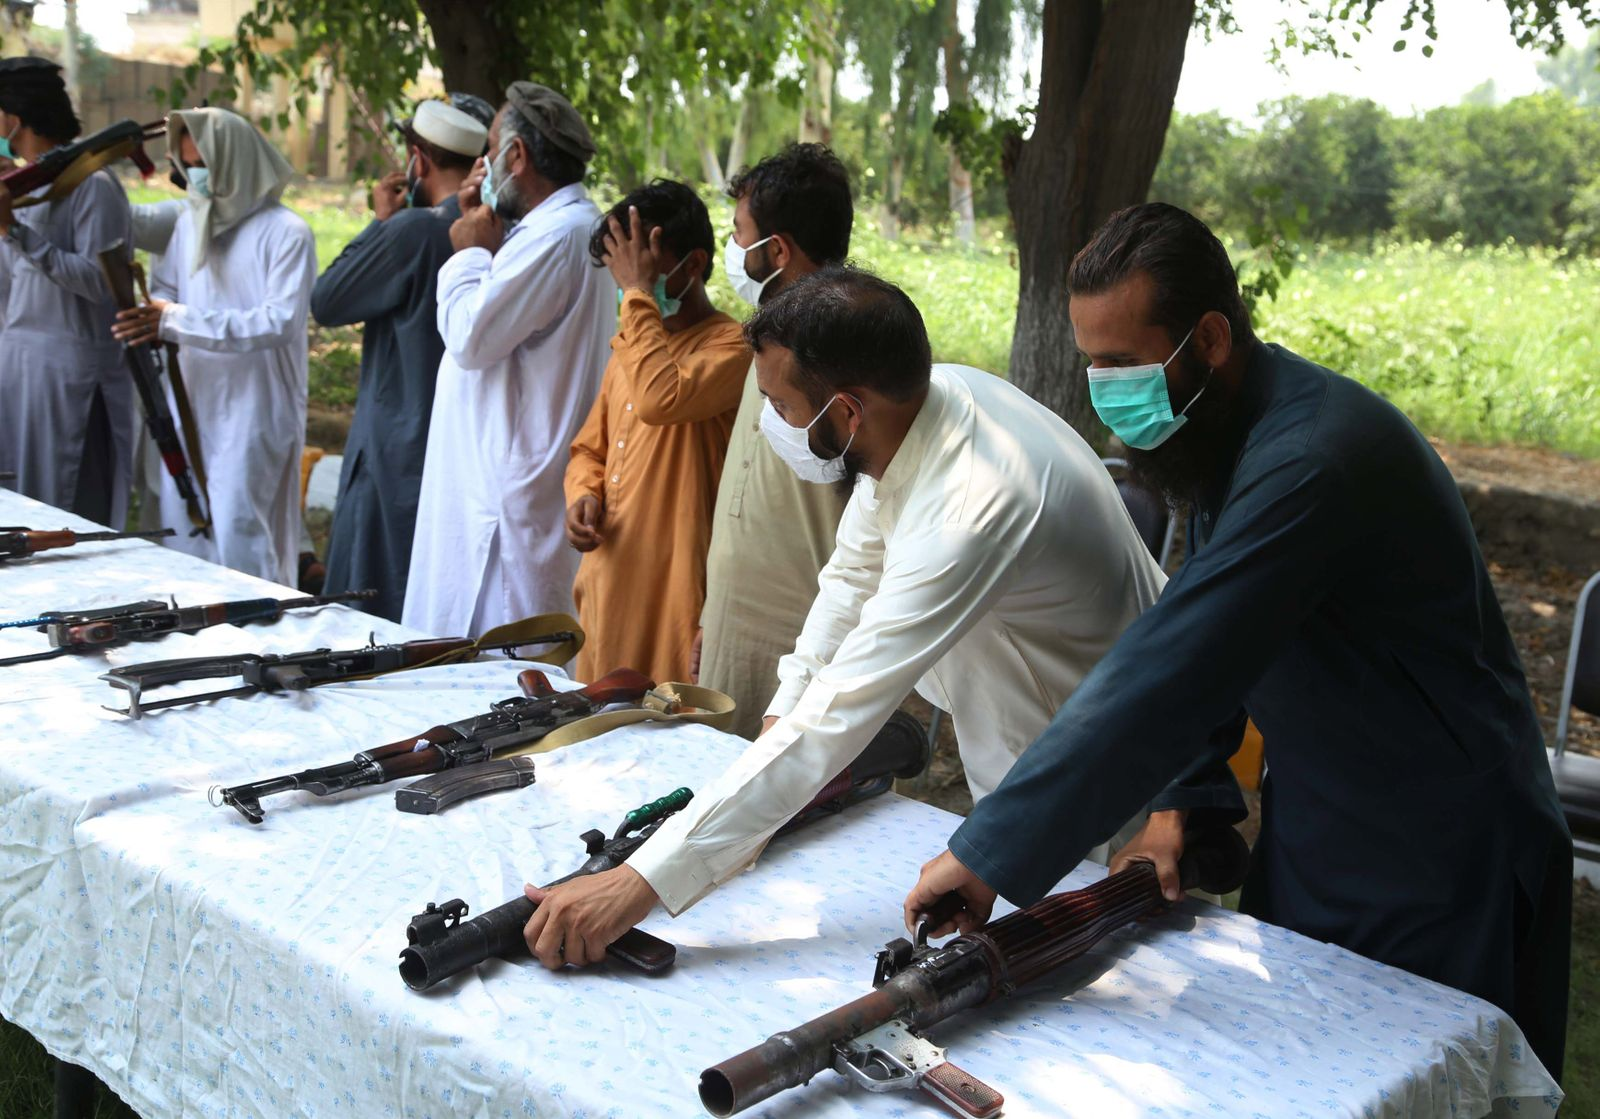 Militants surrender their weapons during a reconciliation ceremony in Jalalabad, Afghanistan - 27 Jul 2020